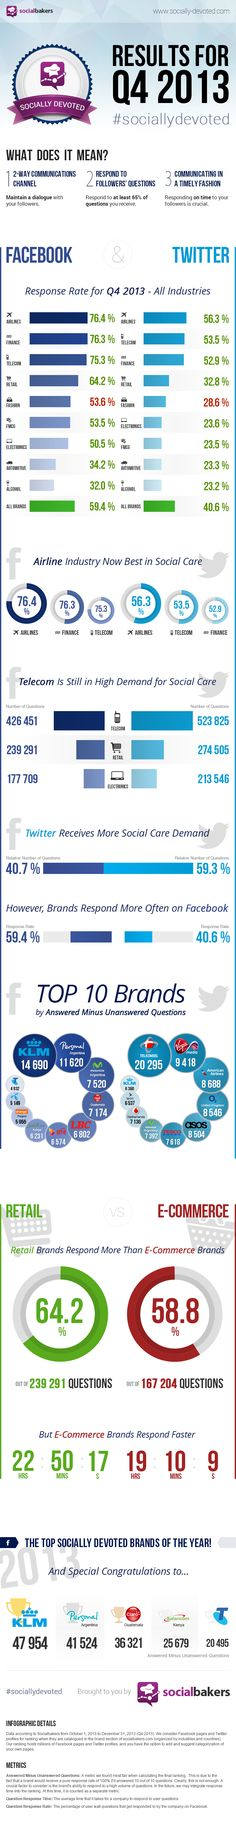 #INFOGRAPHIC What brands are Social Devoted?